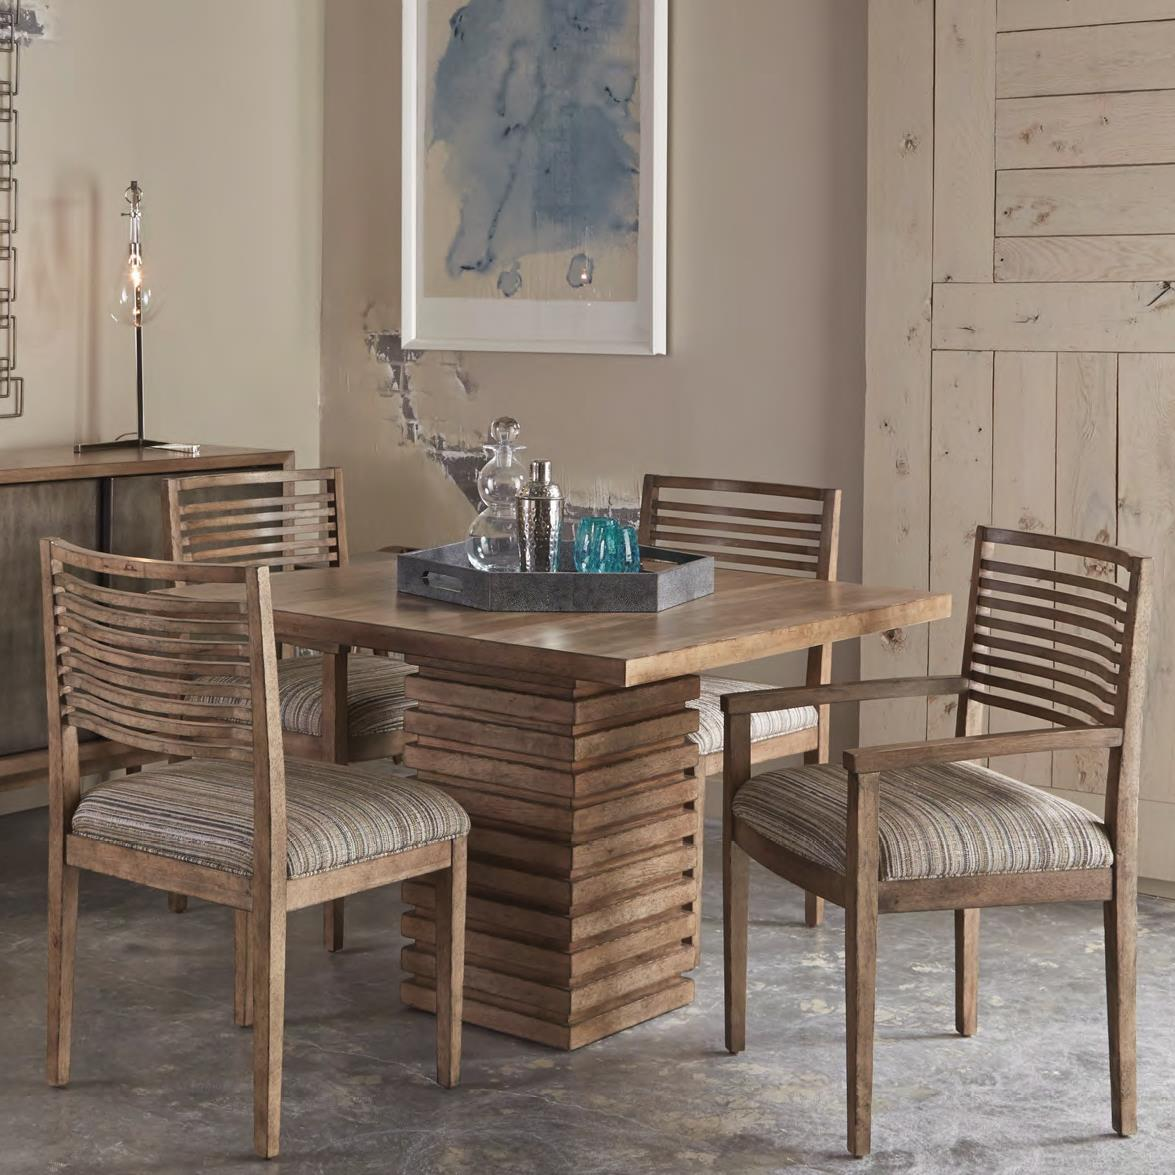 Belfort Signature Urban Treasures 5-Piece Shaw Pedestal Dining Table Set - Item Number: 223222-2302+2x223205+2x223204